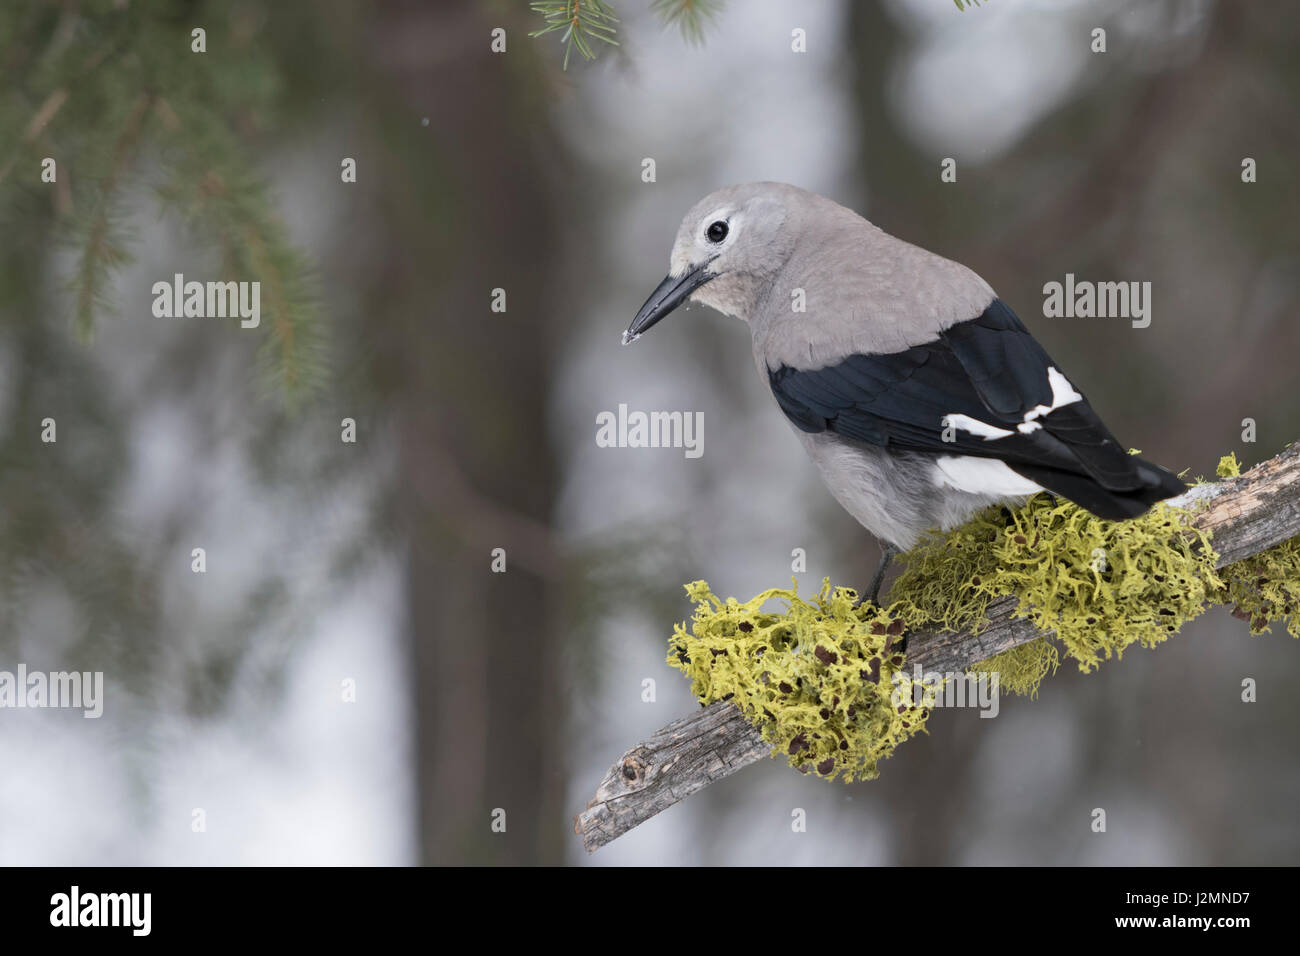 Clark's Nutcracker / Kiefernhäher ( Nucifraga columbiana ) in winter, in natural surrounding, nice backside - Stock Image